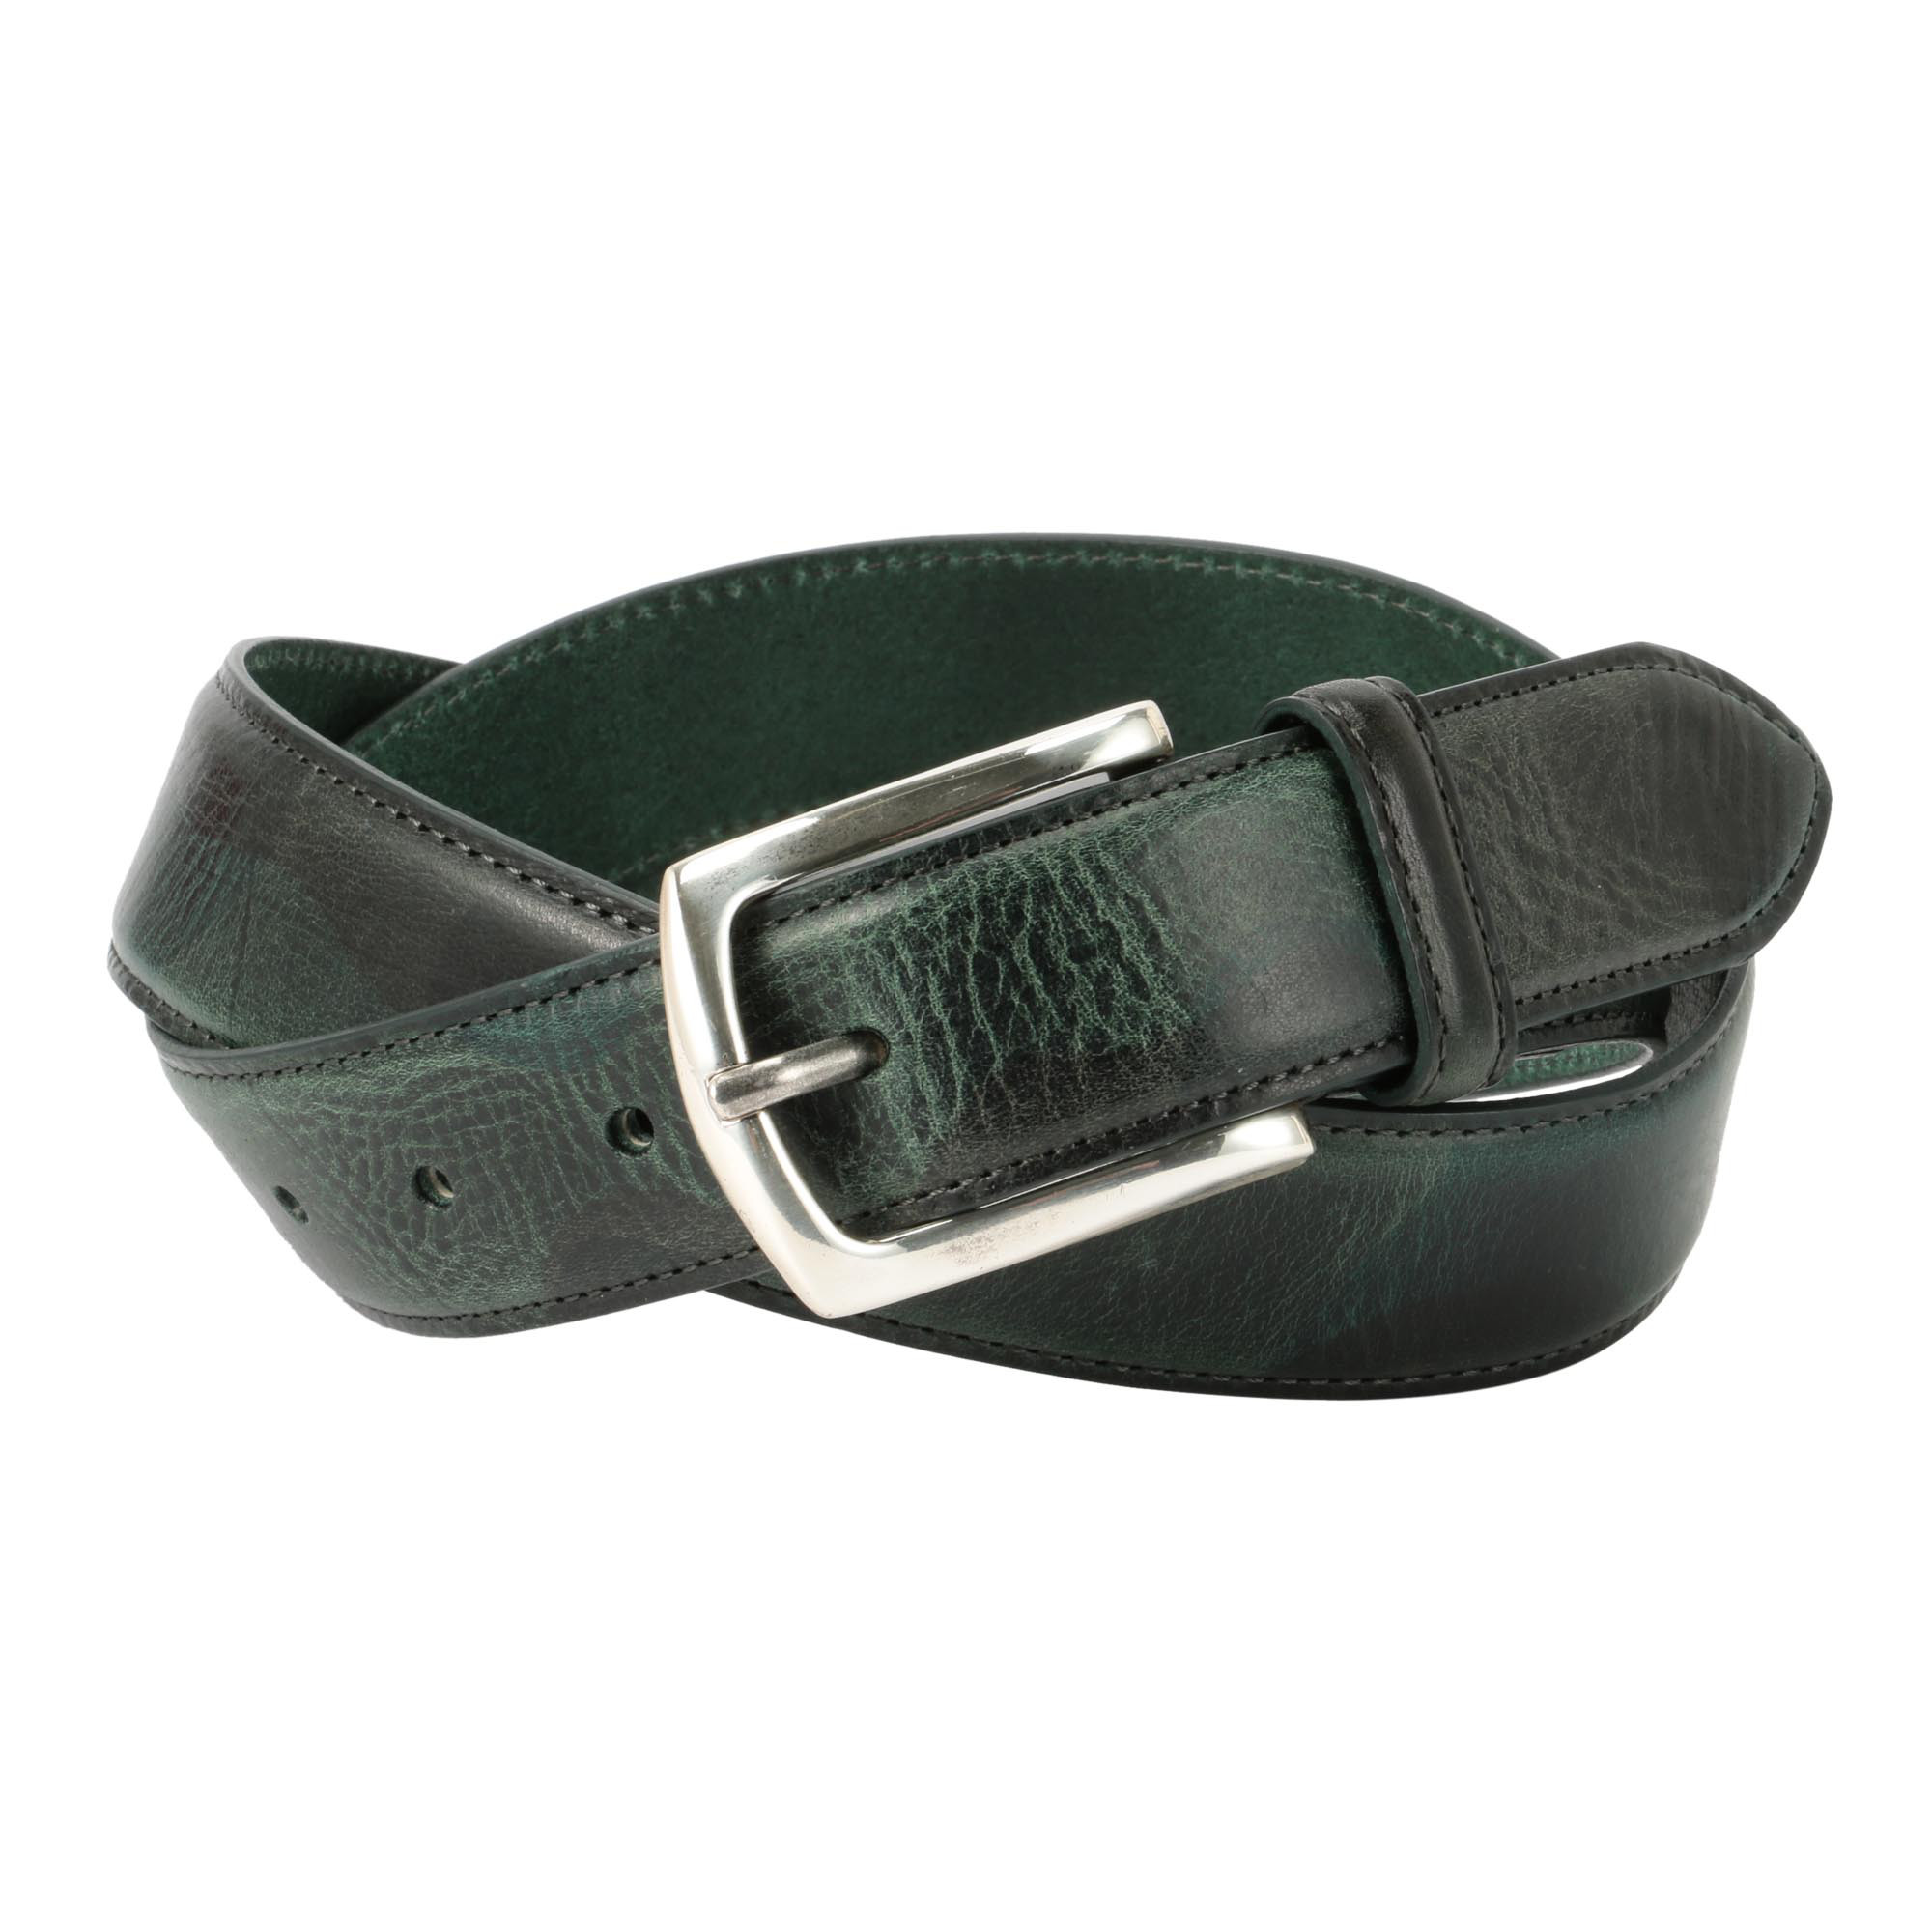 CAMOUFLAGE PRINT LEATHER BELT